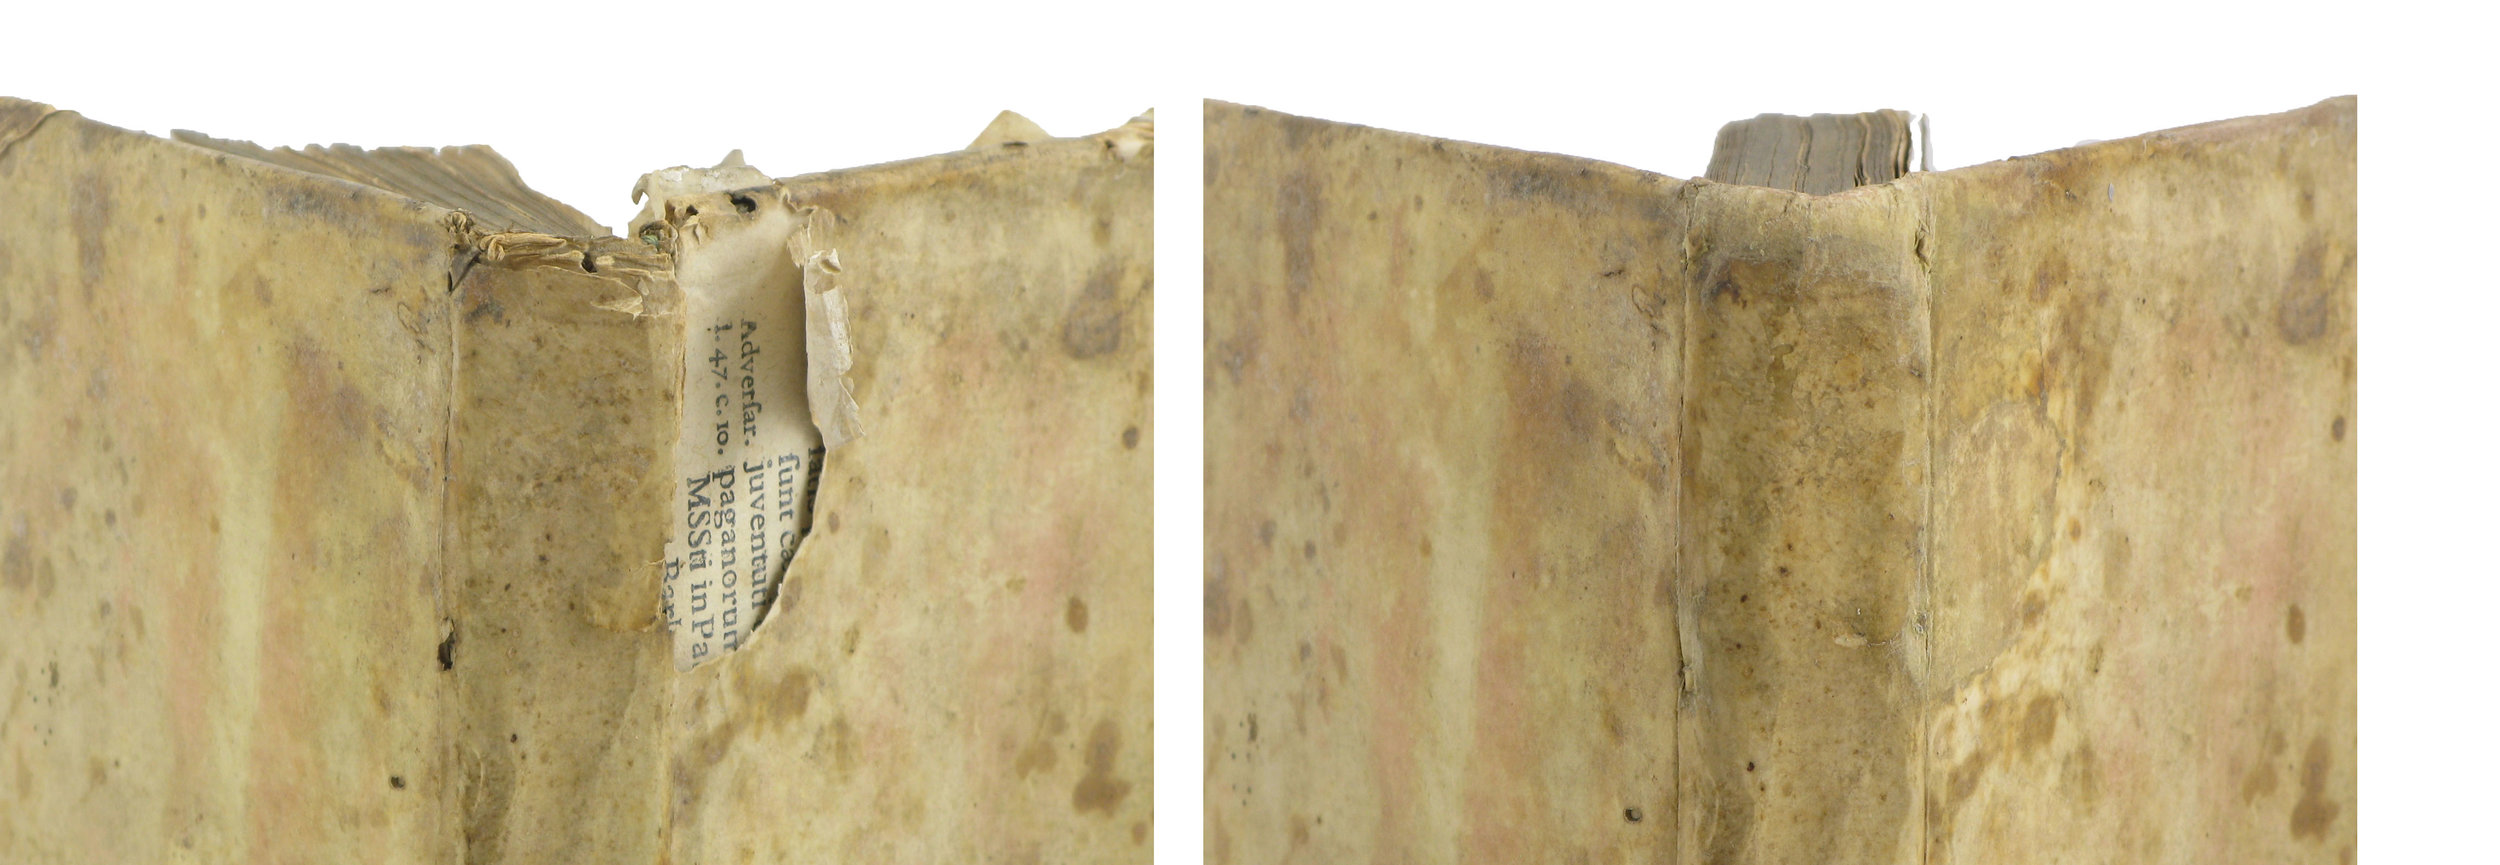 parchment before and after.jpg